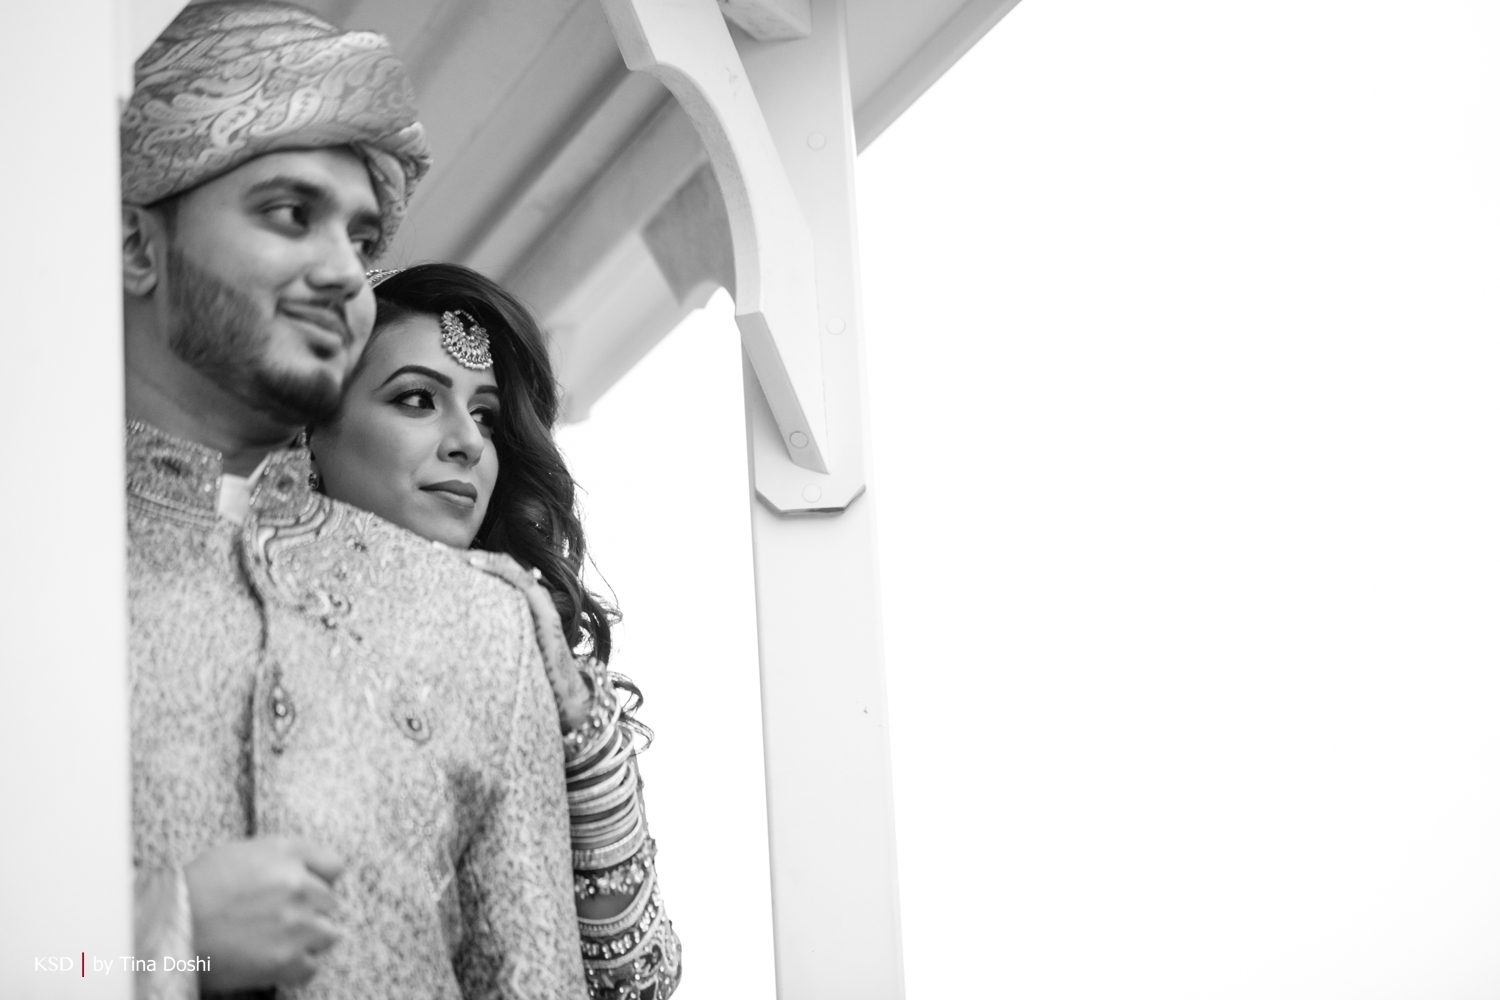 nj_south_asian_wedding_0020